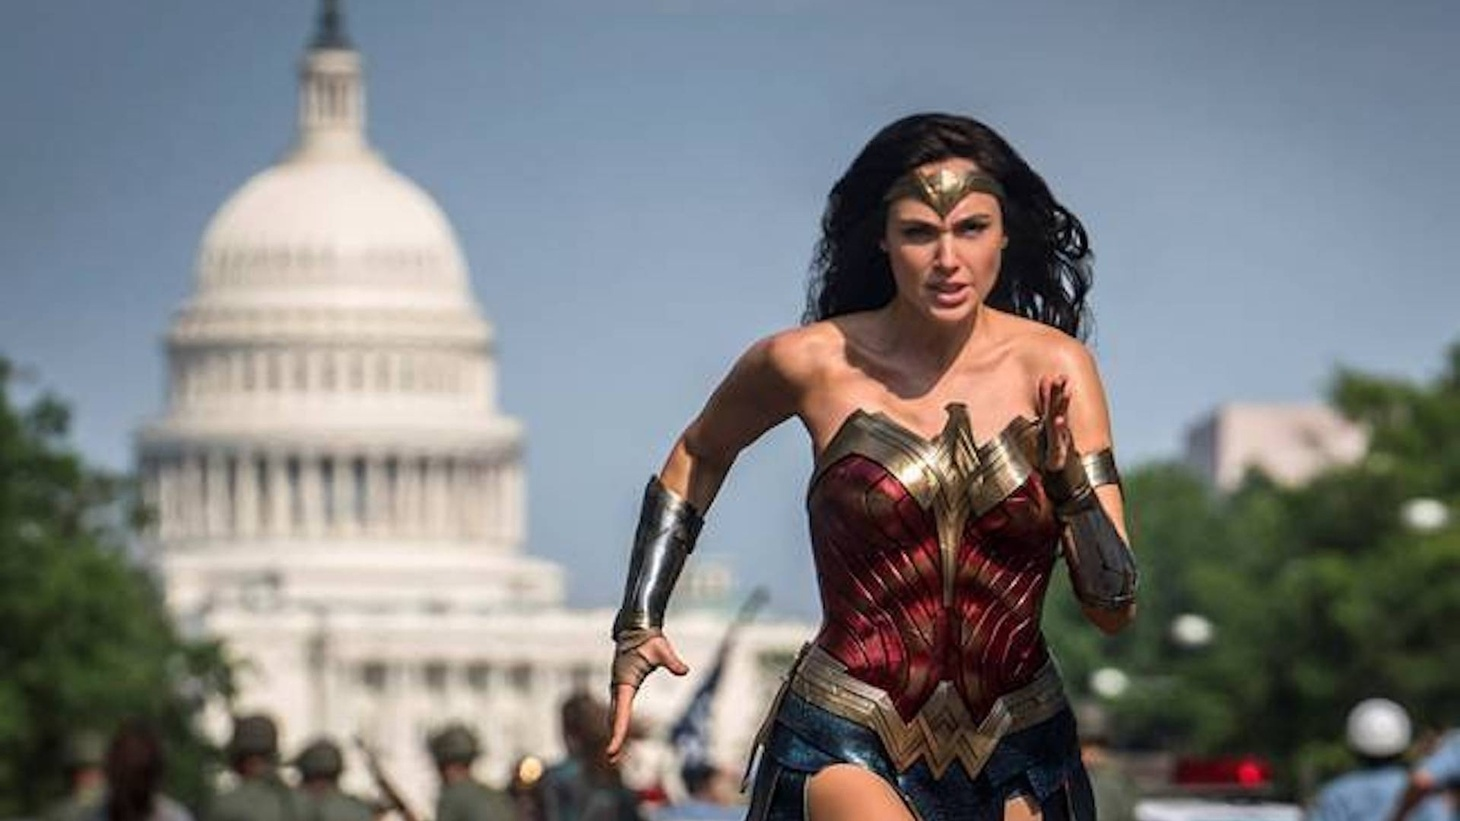 """""""Wonder Woman 1984"""" is coming to theaters and HBOMax on Christmas Day. WarnerMedia then made the historic decision to release all 17 of its movies in 2021 in theaters and on HBOMax simultaneously."""